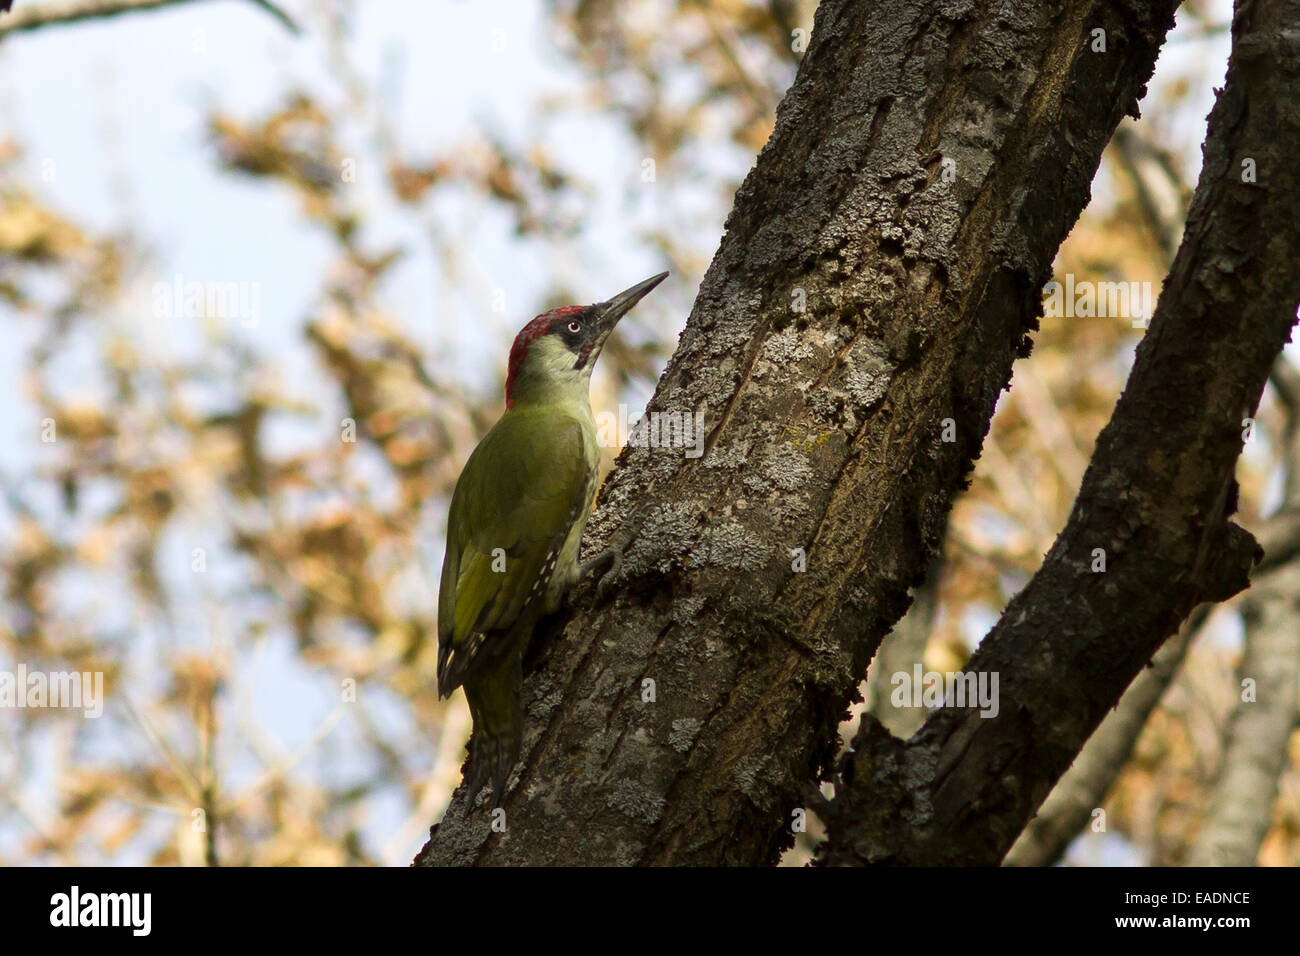 Male green woodpecker on a tree trunk autumn day - Stock Image